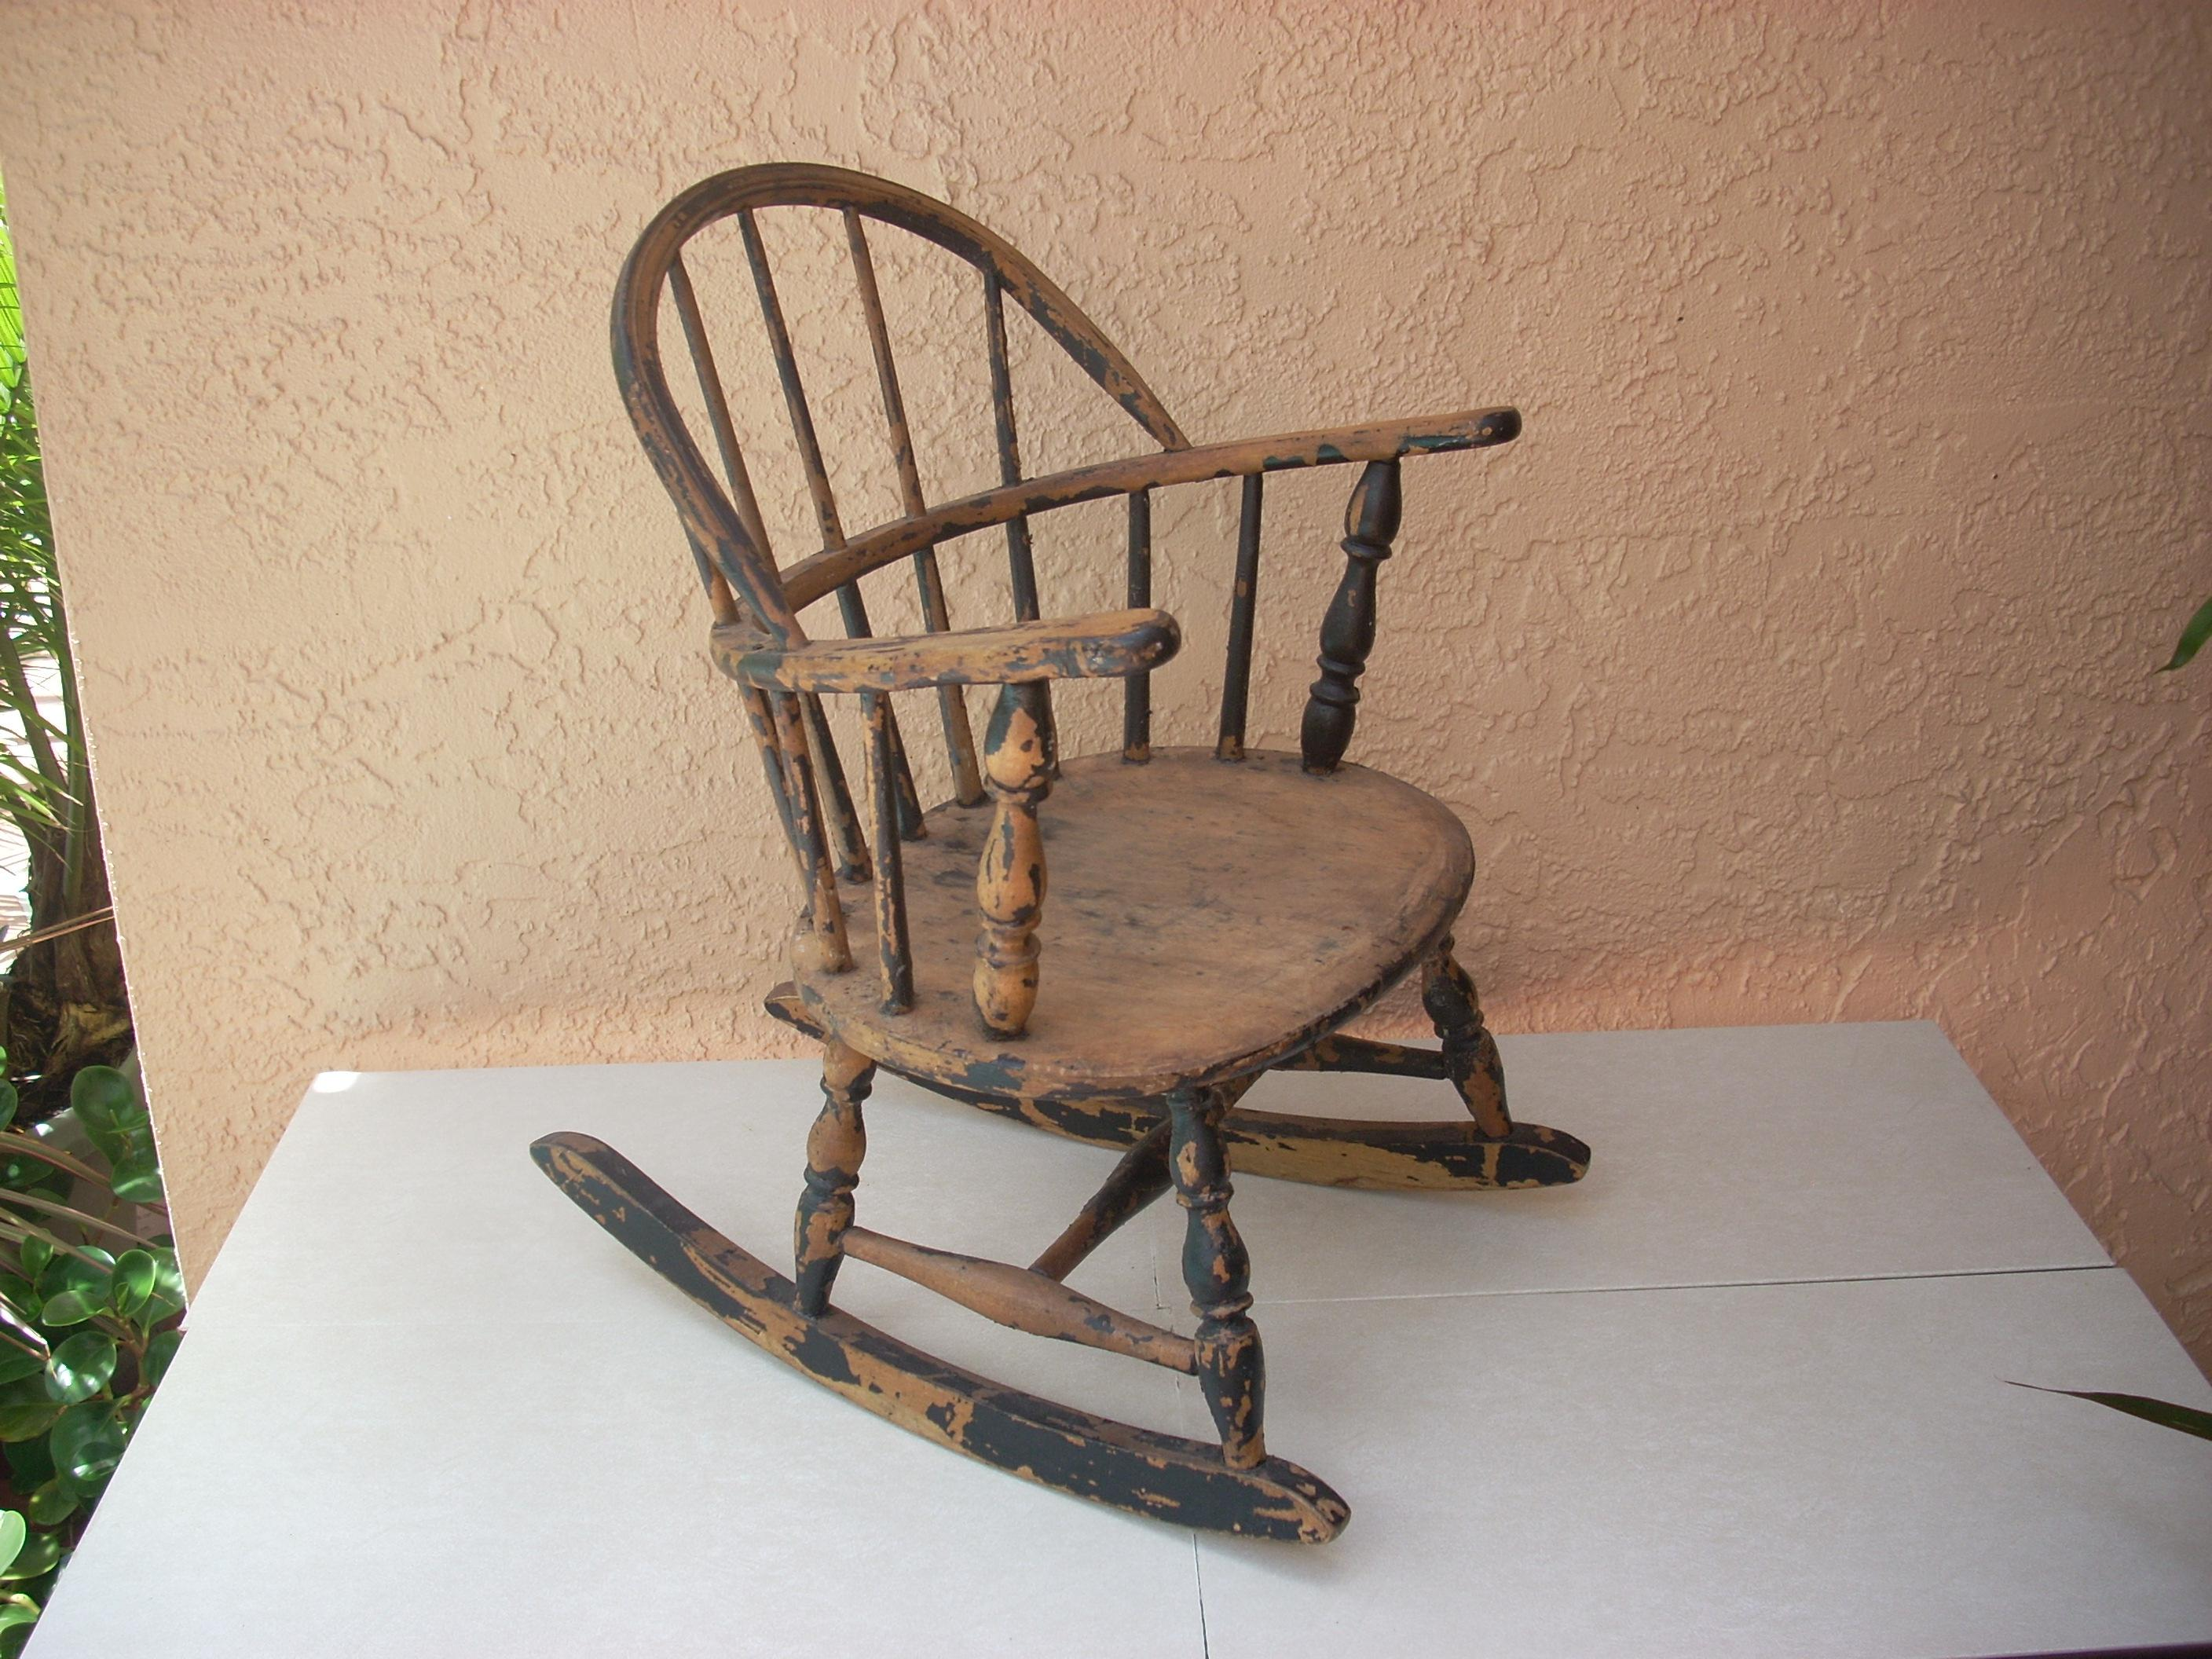 An Antique Rocking Chair Manufactured By S. Bent U0026 Bros, Co, Gardner,